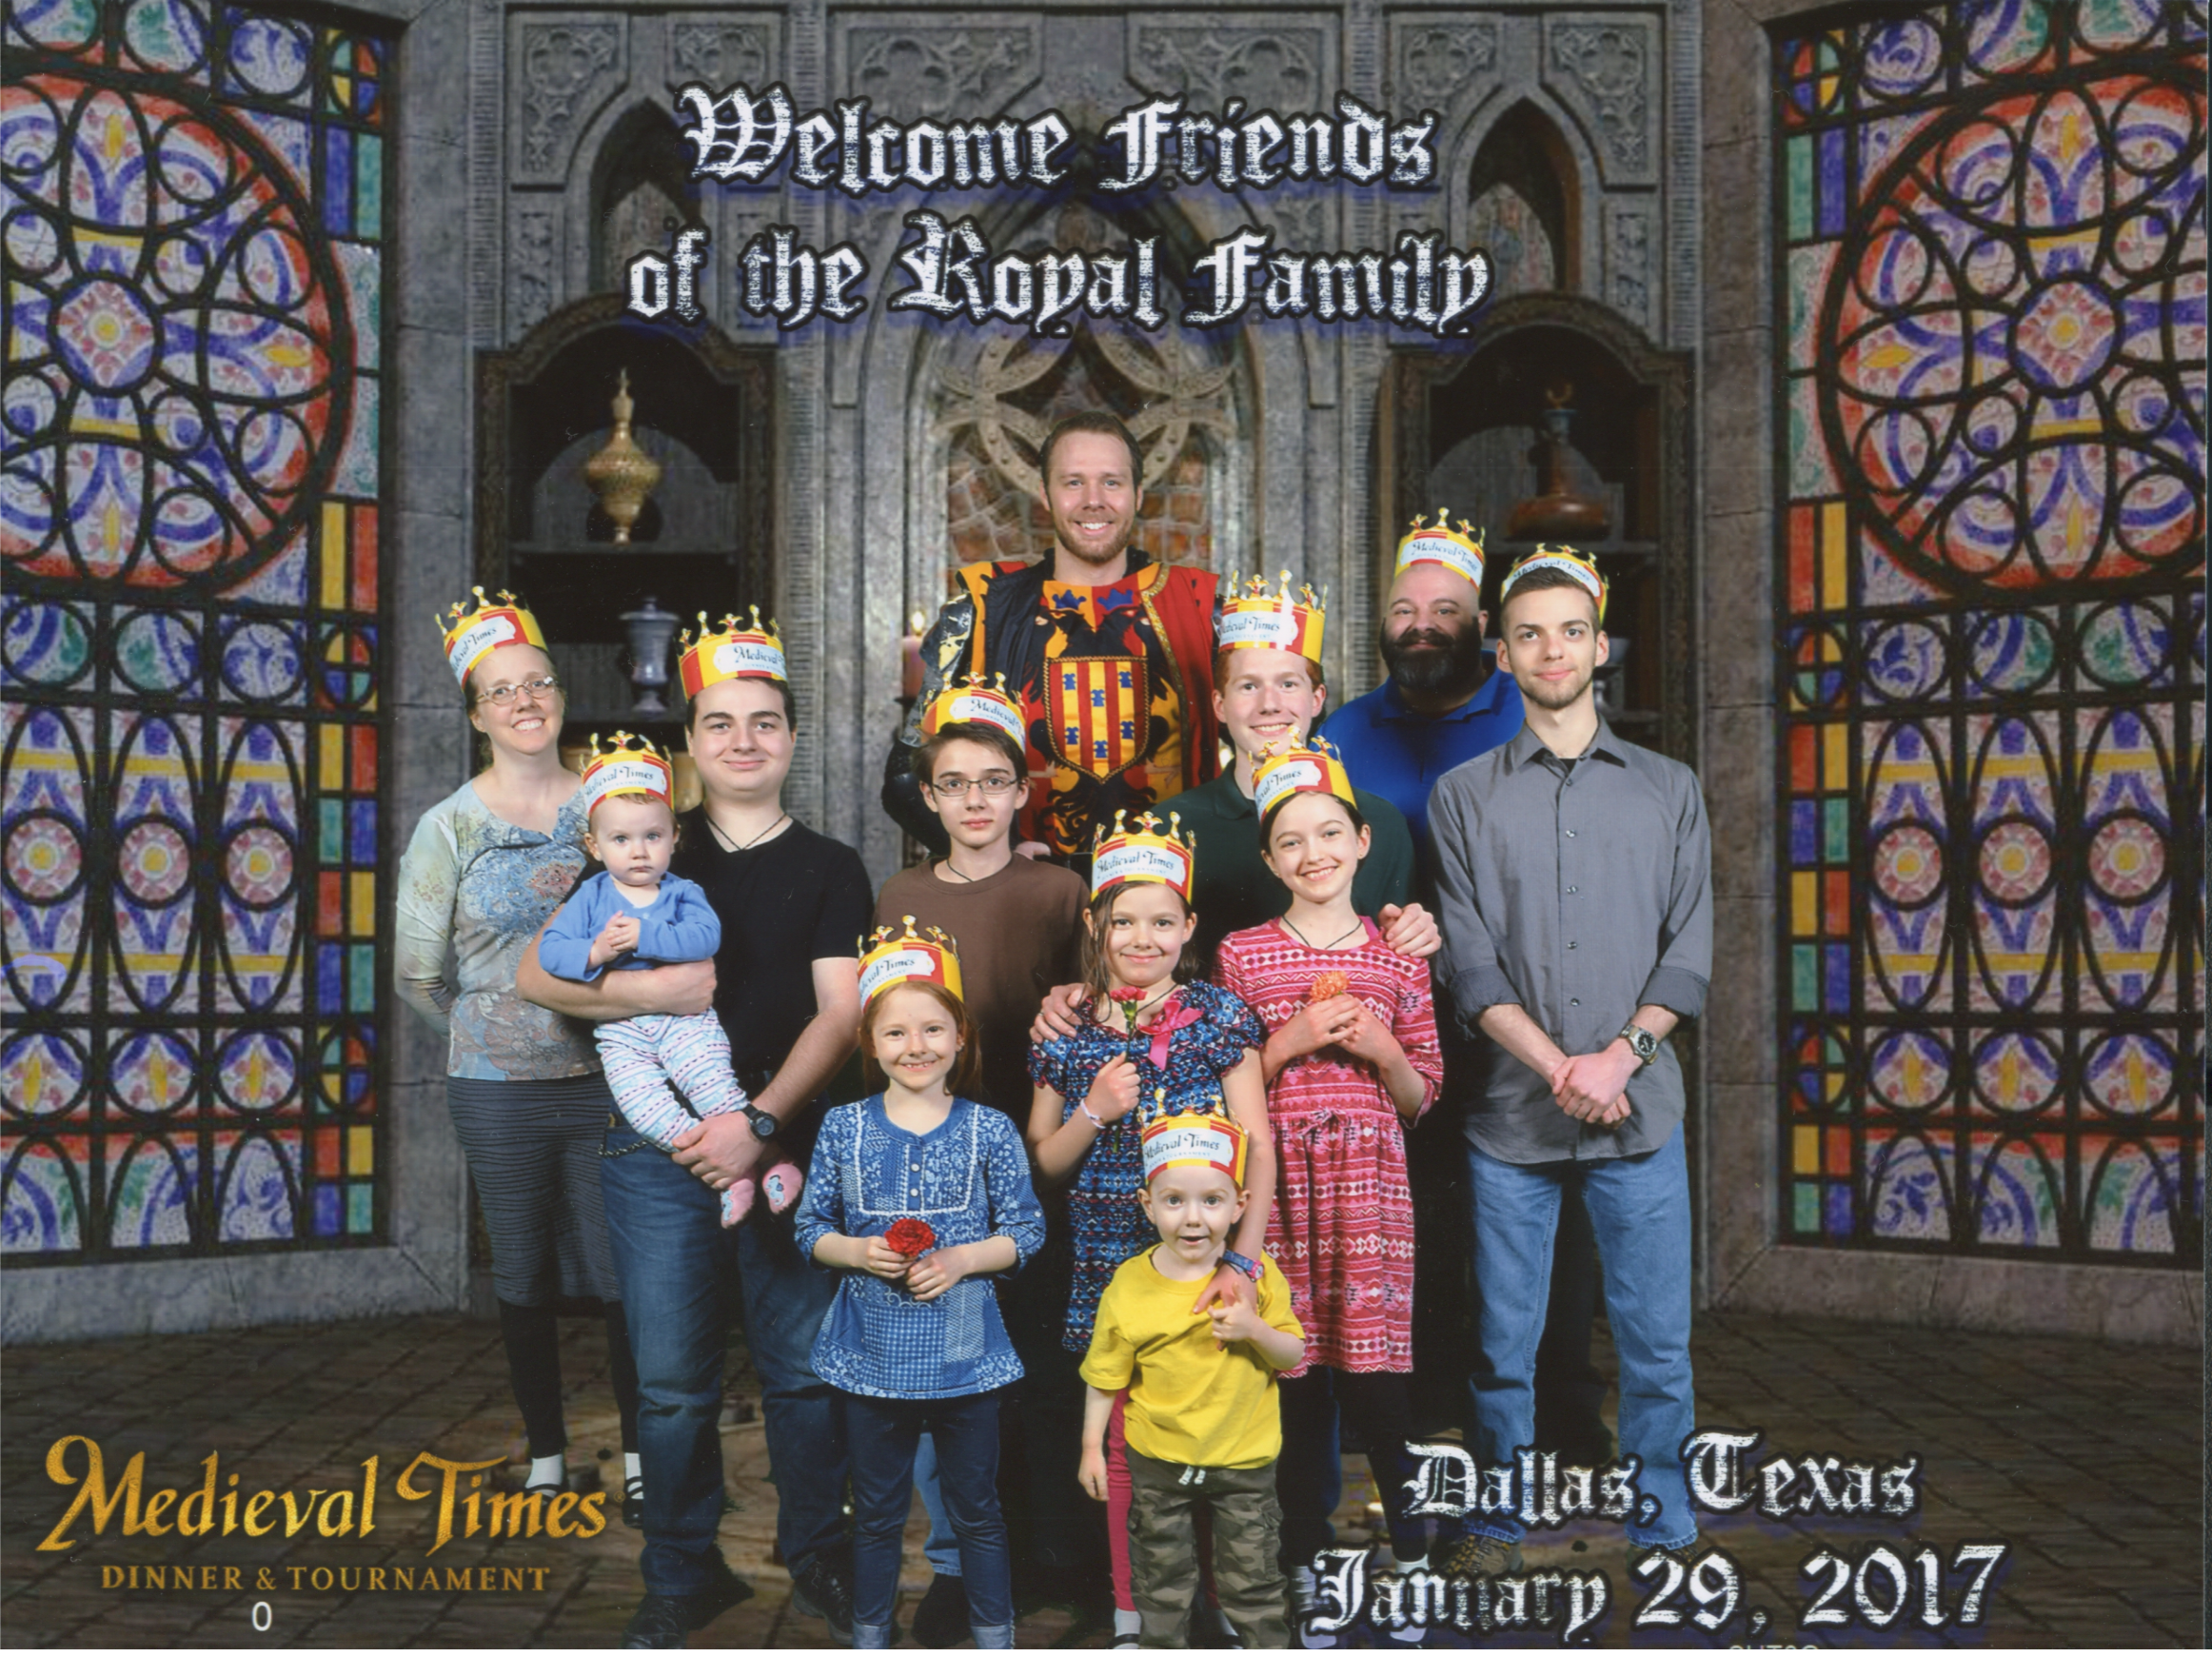 Medieval Times Stained Glass Windows Background. Jen, Nunzio hoilding Caterina, Catie, Cross, Eric the Red and Yellow Knight, Bernie, Becket, Michael, Jacinta, Justin and Joseph. Bottom Text: 'Dallas, Texas January 29, 2017'